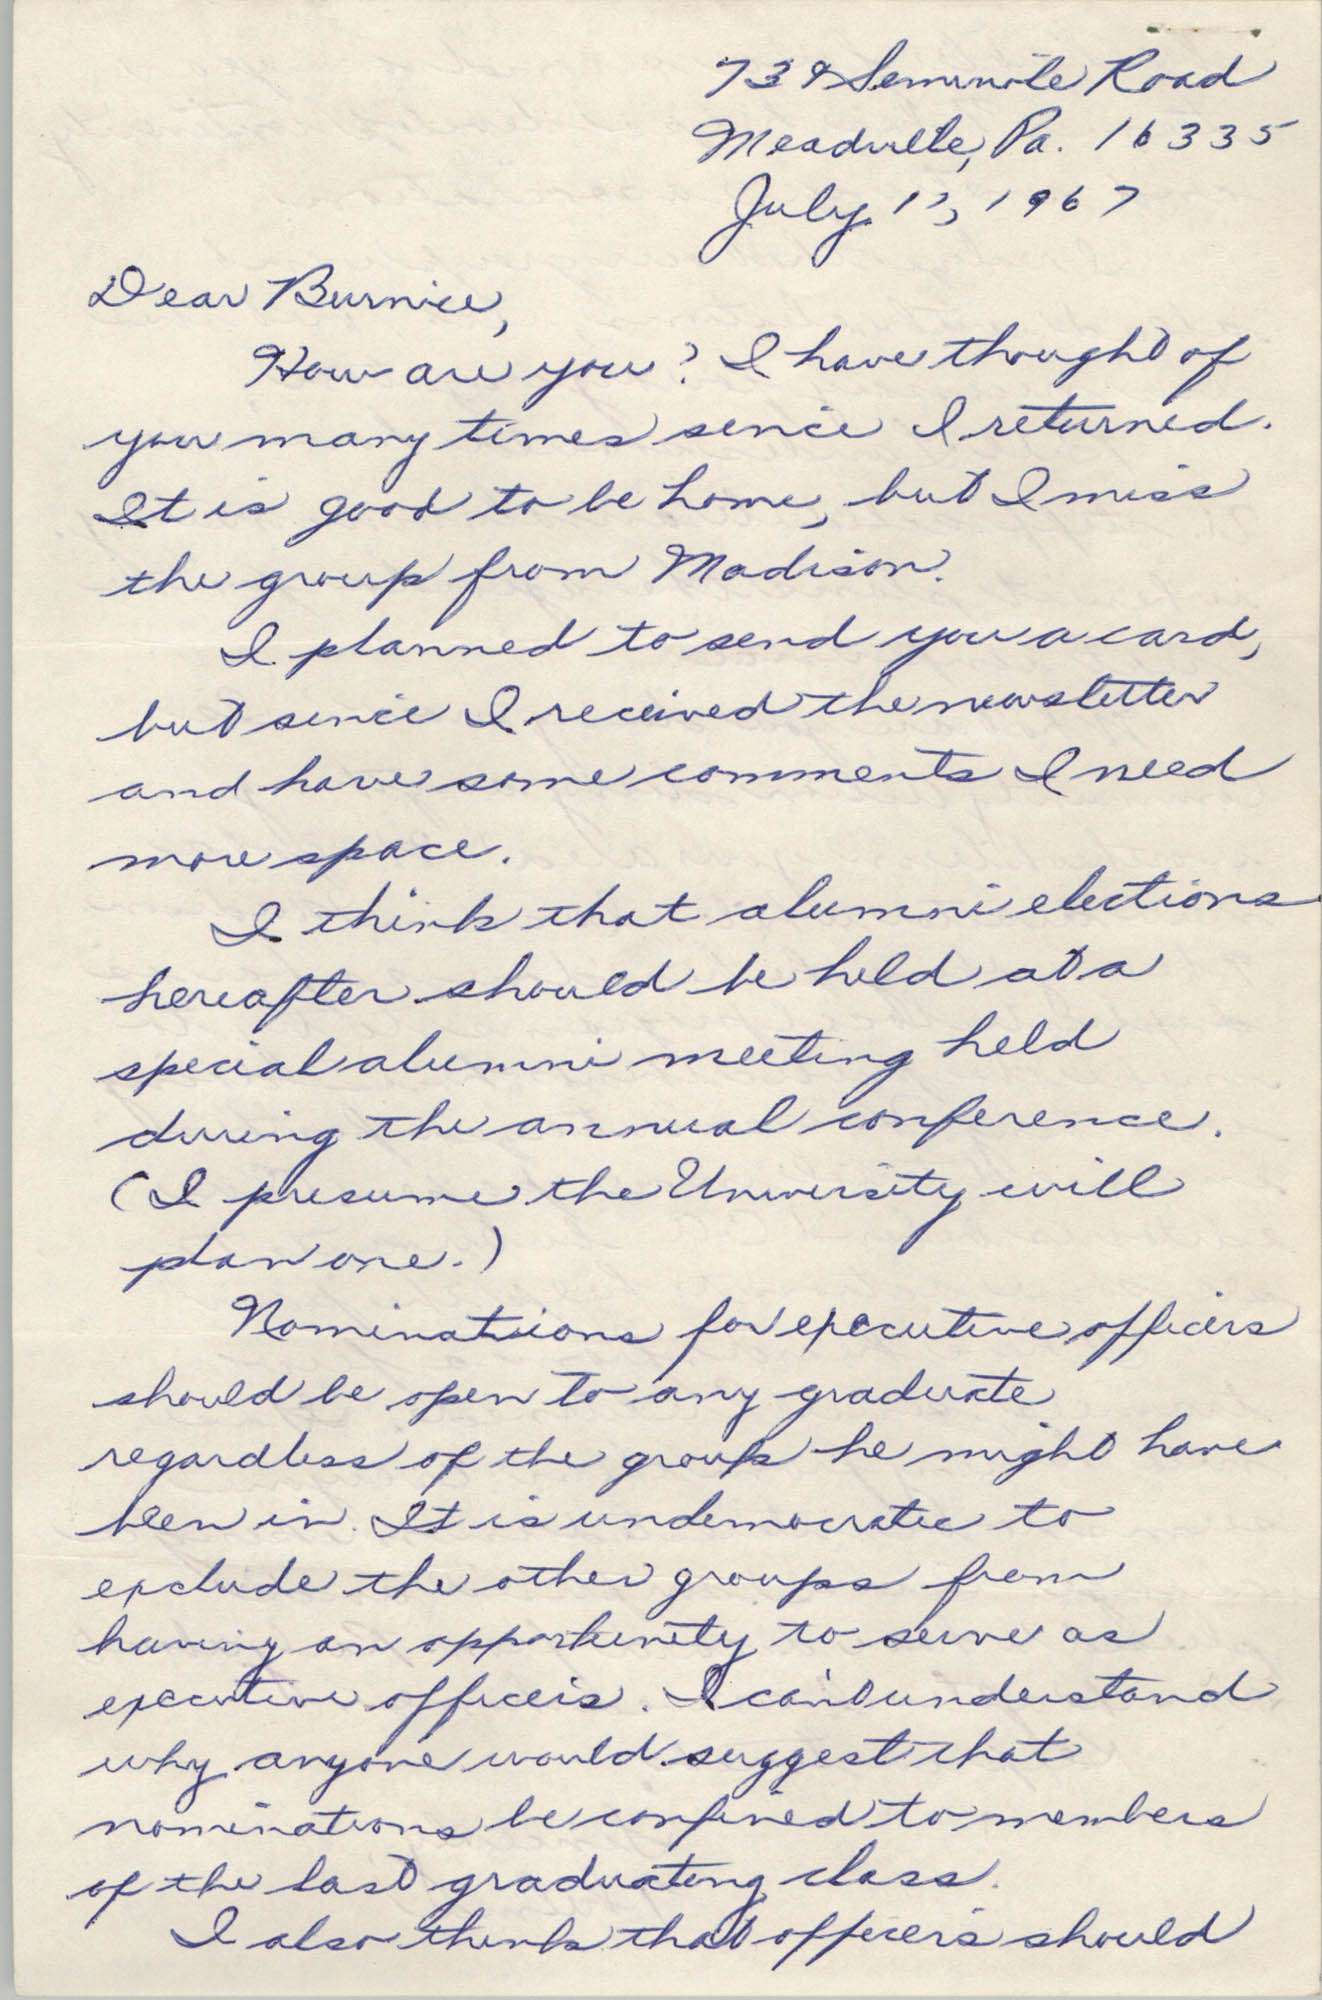 Letter from Thelma Addleman to Bernice Robinson, July 1967